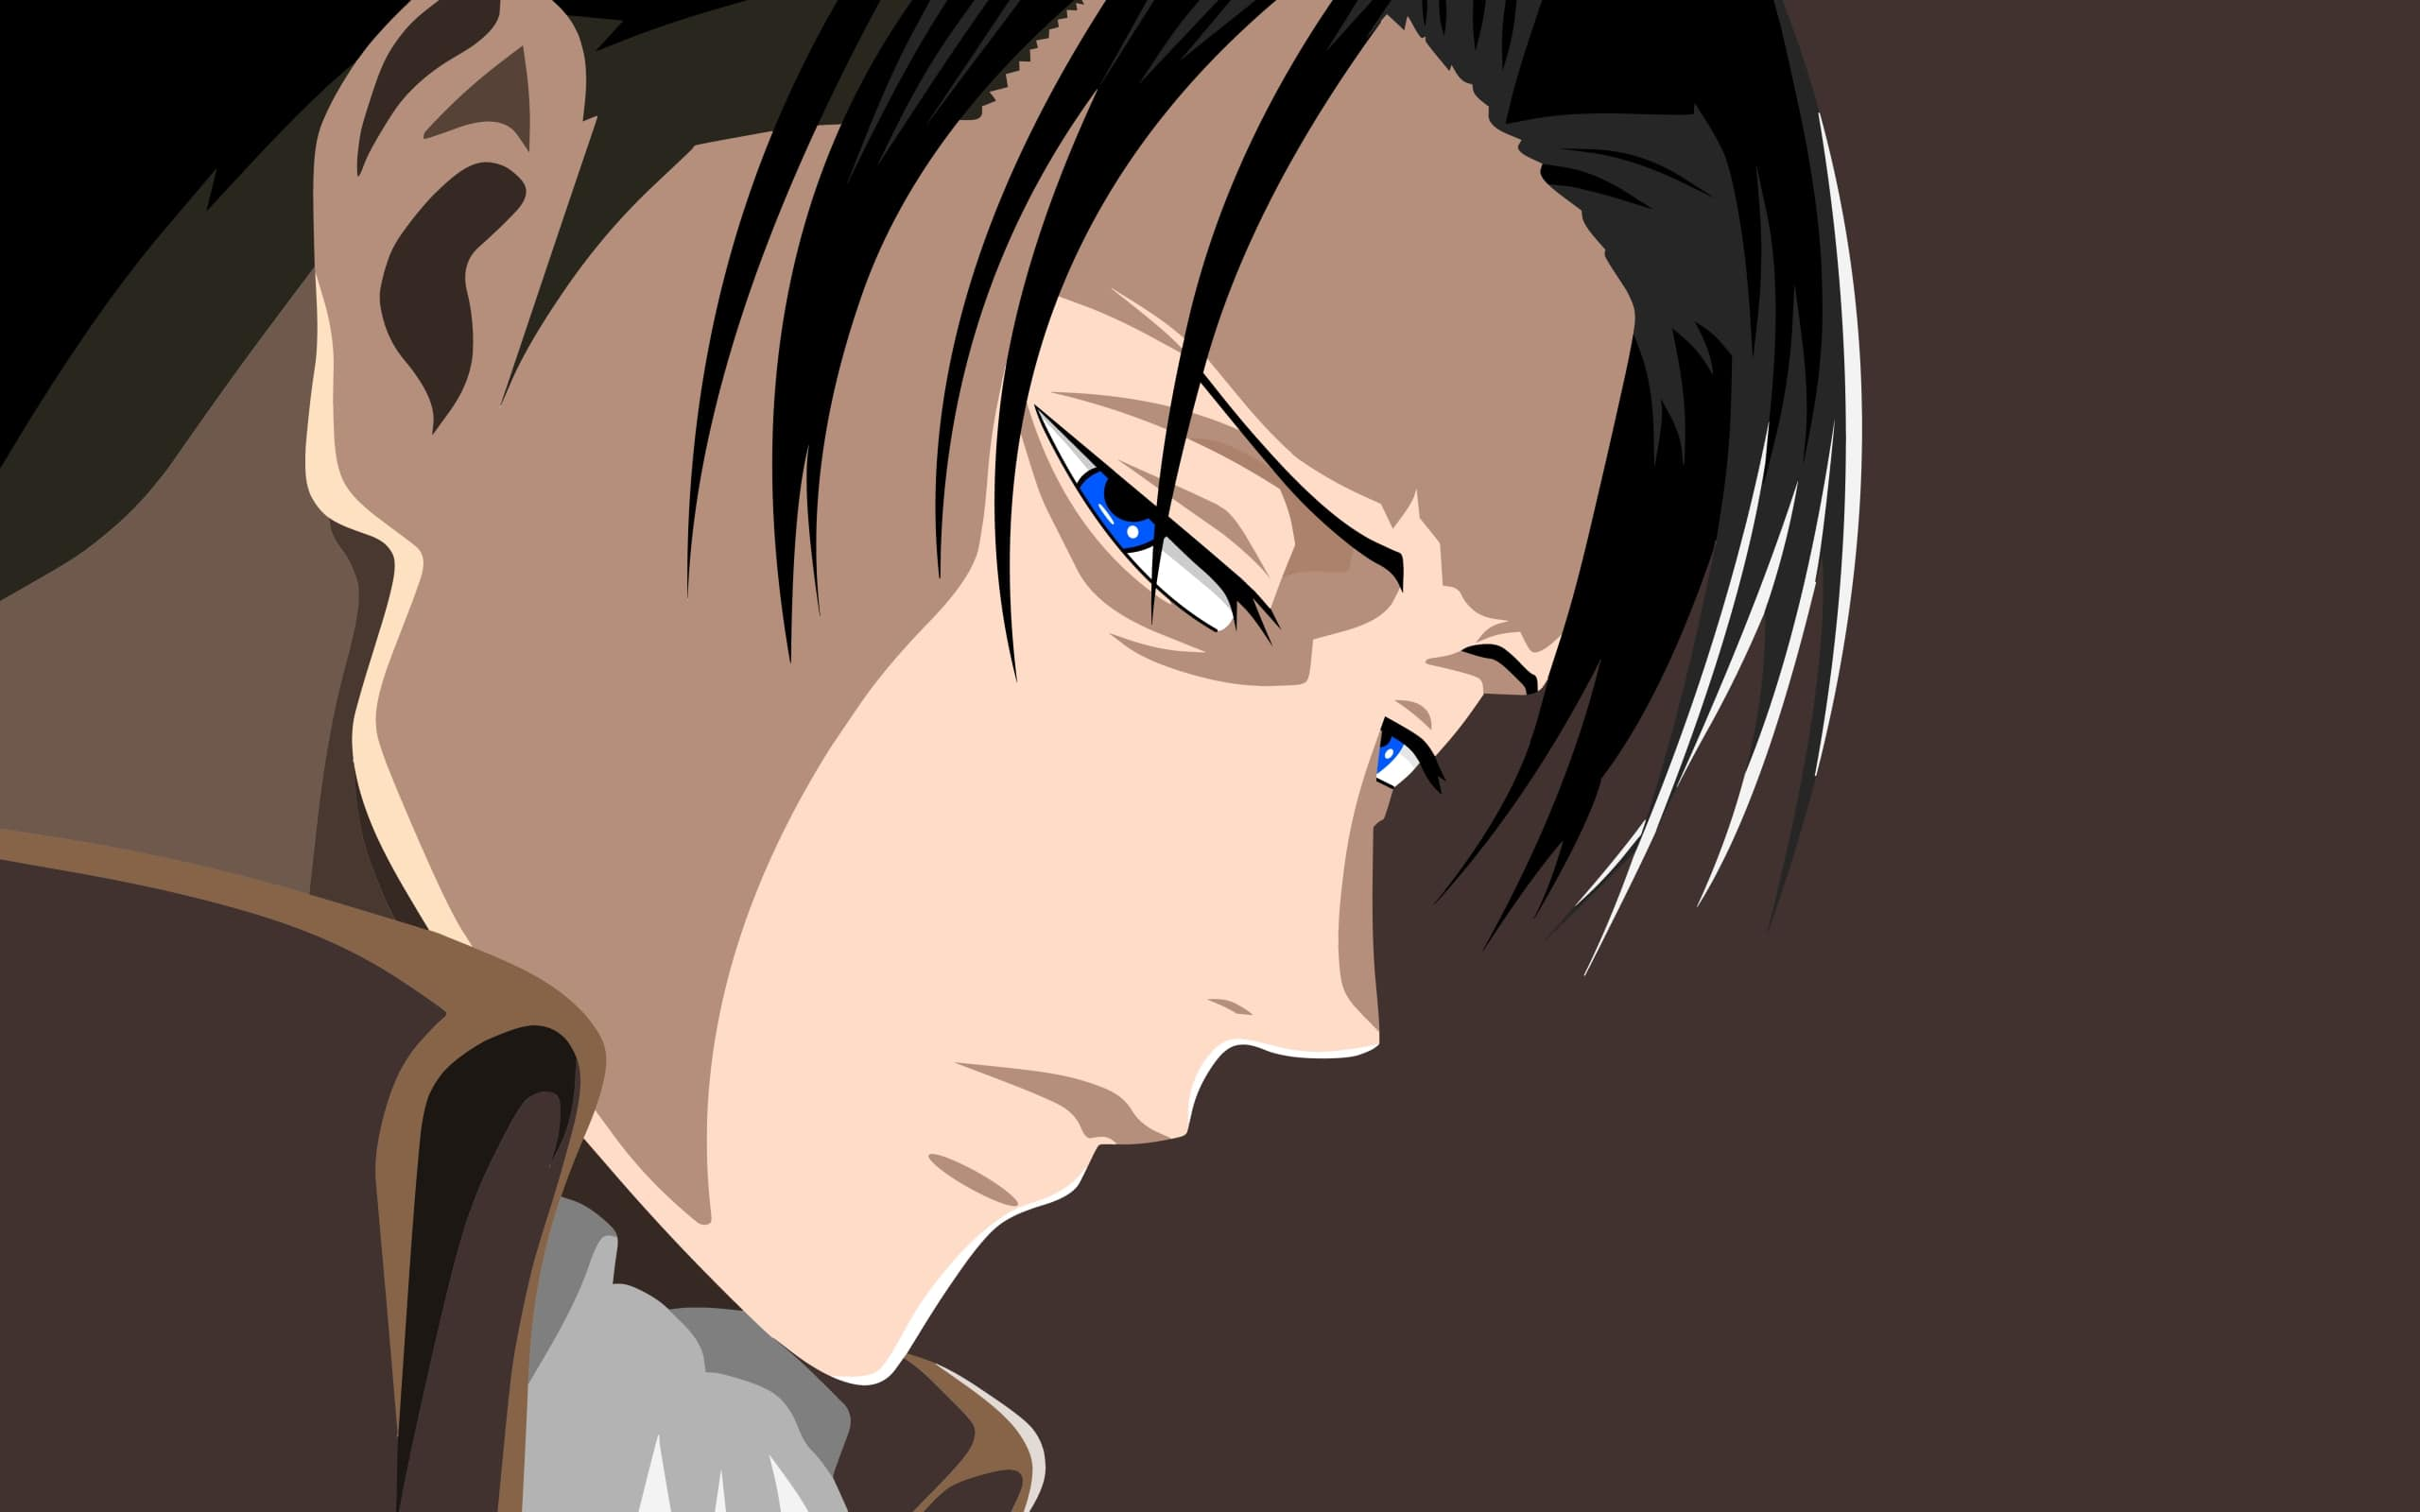 Wallpaper Of Anime Attack On Titan Levi Ackerman Levi Ackerman Wallpaper Aot Levi 2560x1600 Wallpaper Teahub Io